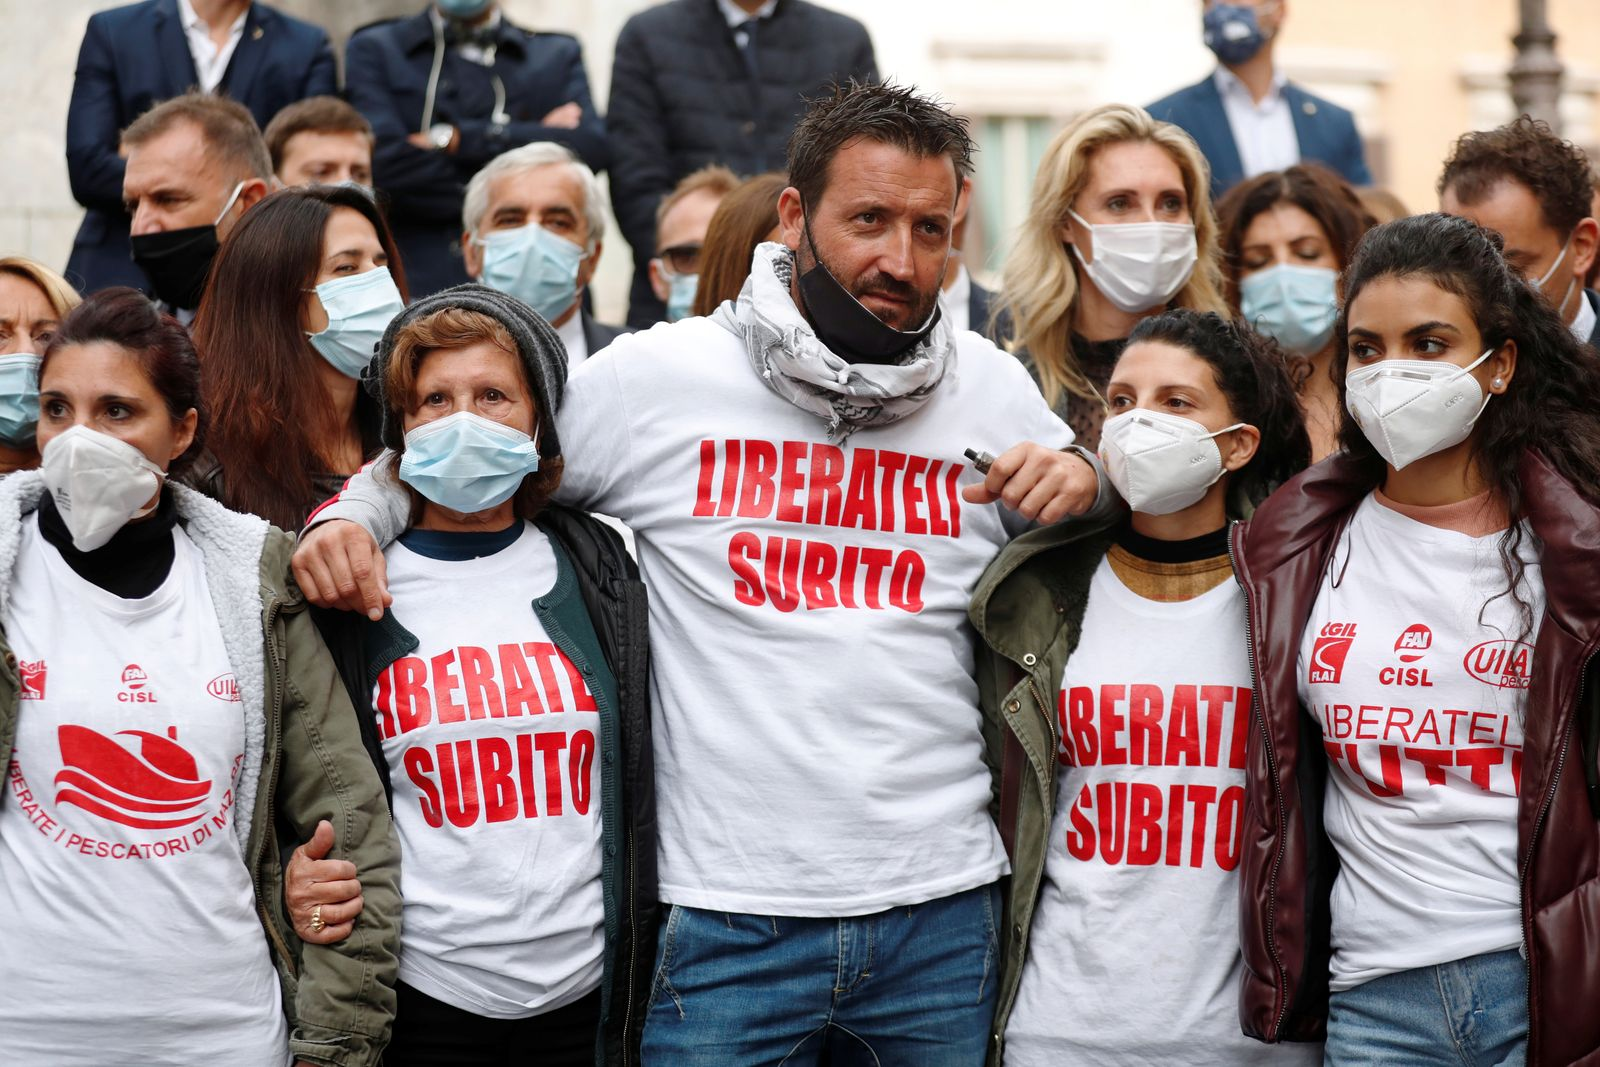 Families ask for the release of Italian fishermen arrested in Libya